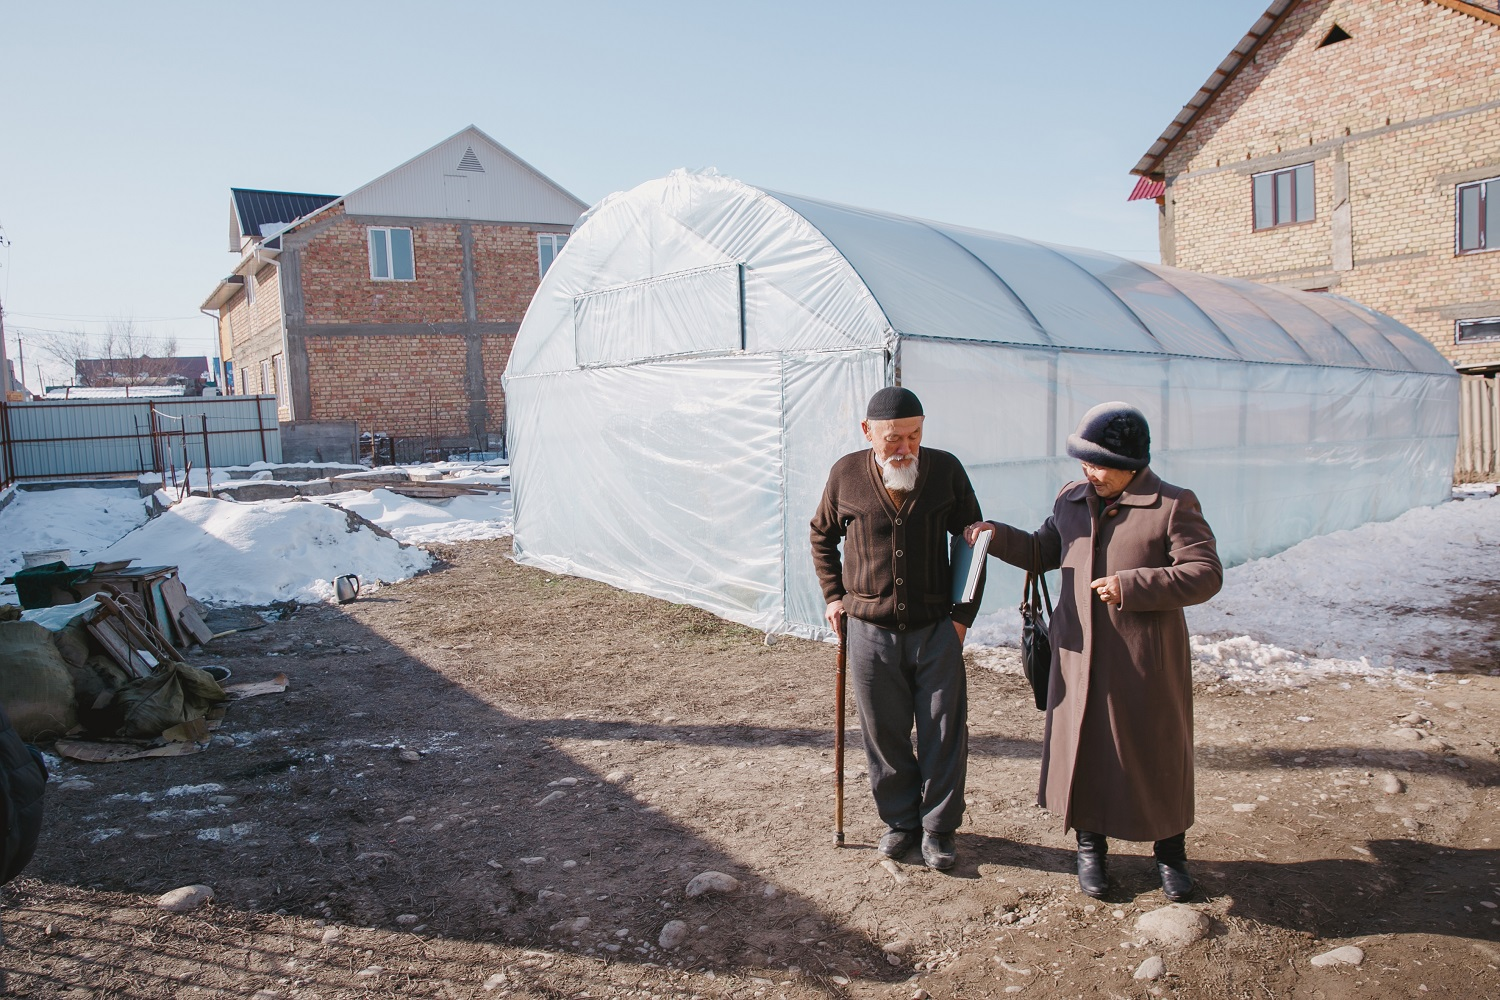 Shukurbekova and husband getting ready to head out in Kyrgyzstan (c) Malik Alymkulov/HelpAge International